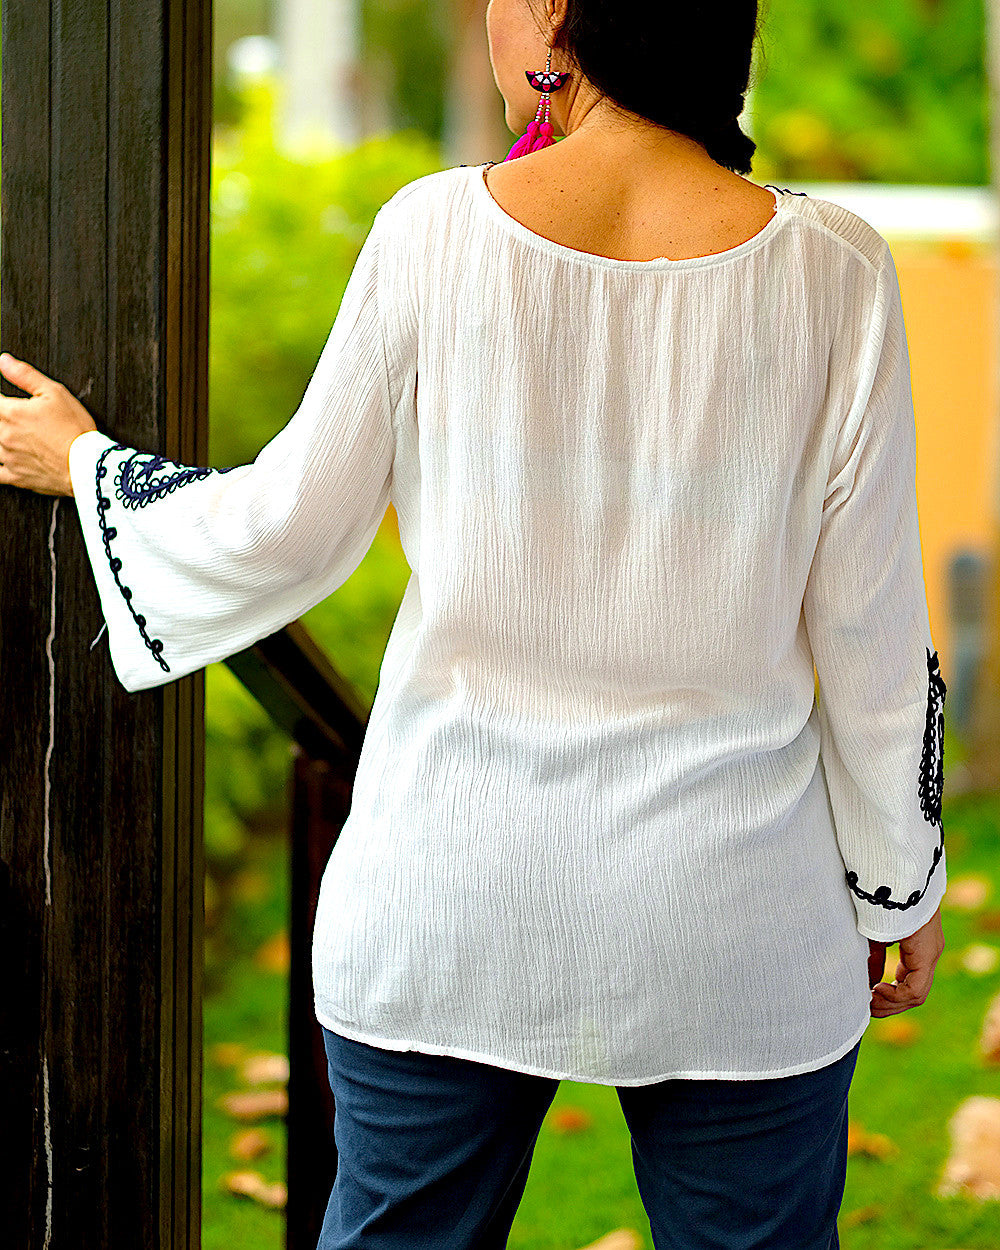 Heart White Blouse